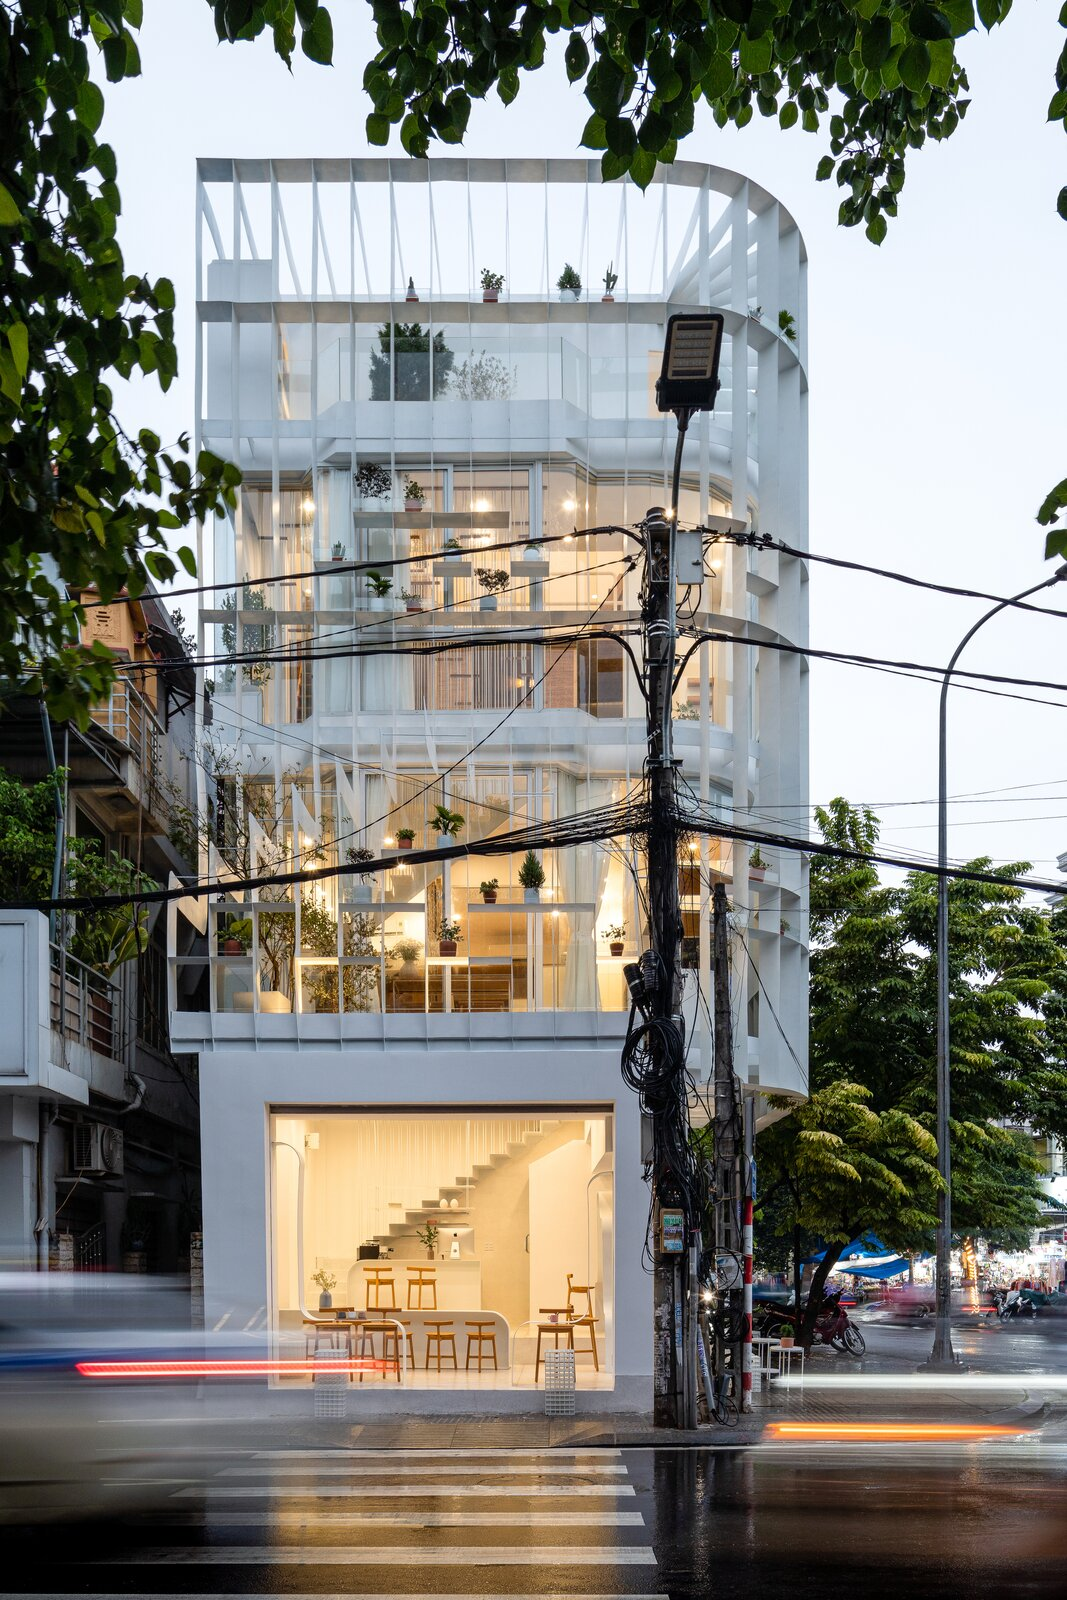 Exterior, Glass Siding Material, and Flat RoofLine  Photo 1 of 23 in A Translucent Tower in Vietnam Invites Visitors in for a Cup of Coffee